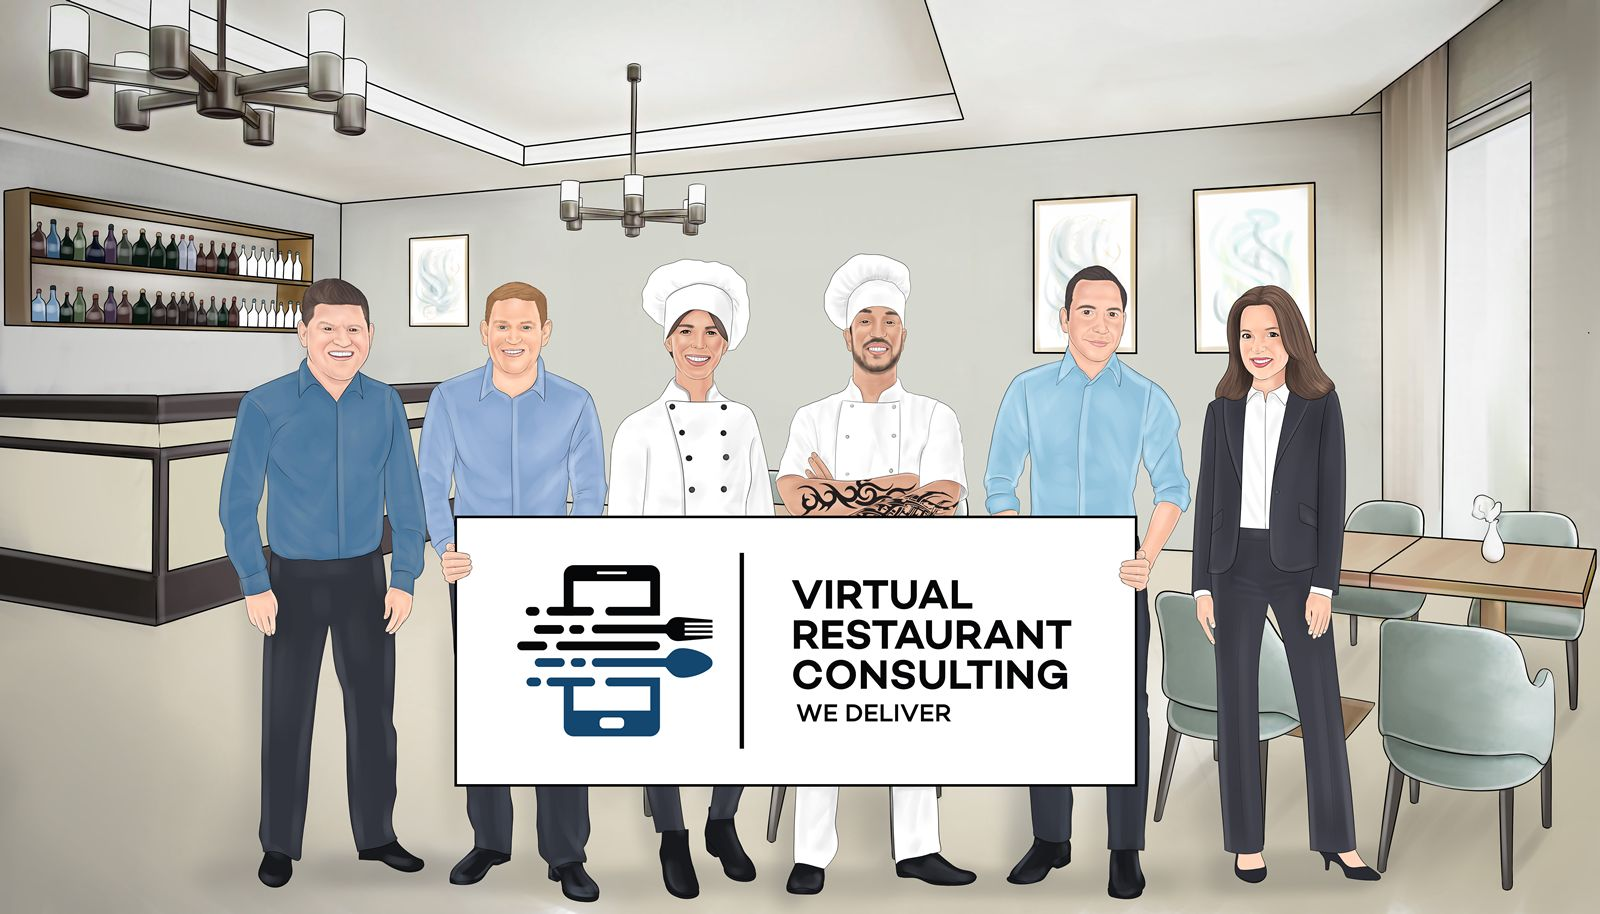 Virtual Restaurant Consulting Launches Program To Save Independent Restaurants